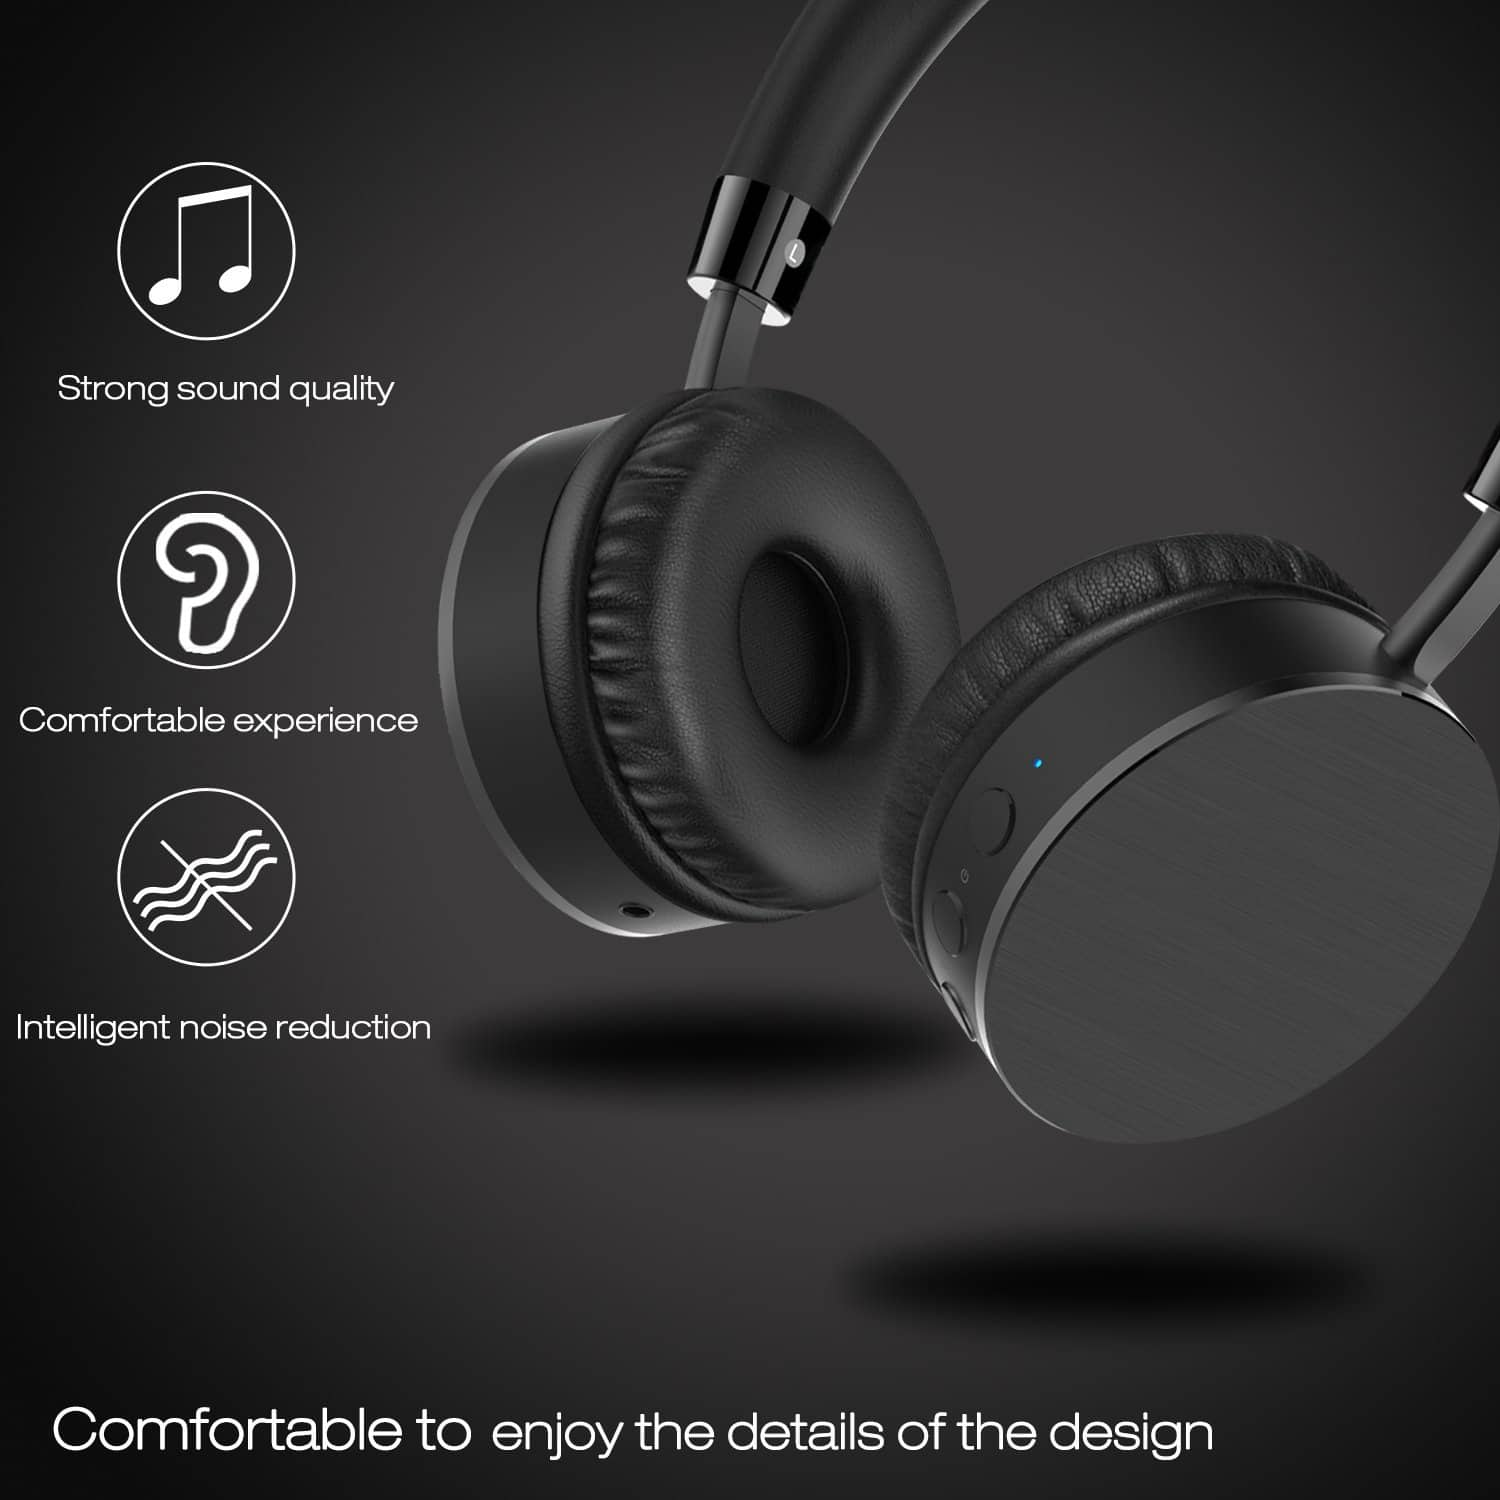 Bluetooth Headphones - Hi-Fi Stereo Wireless Headset w/ Built-in Mic ...